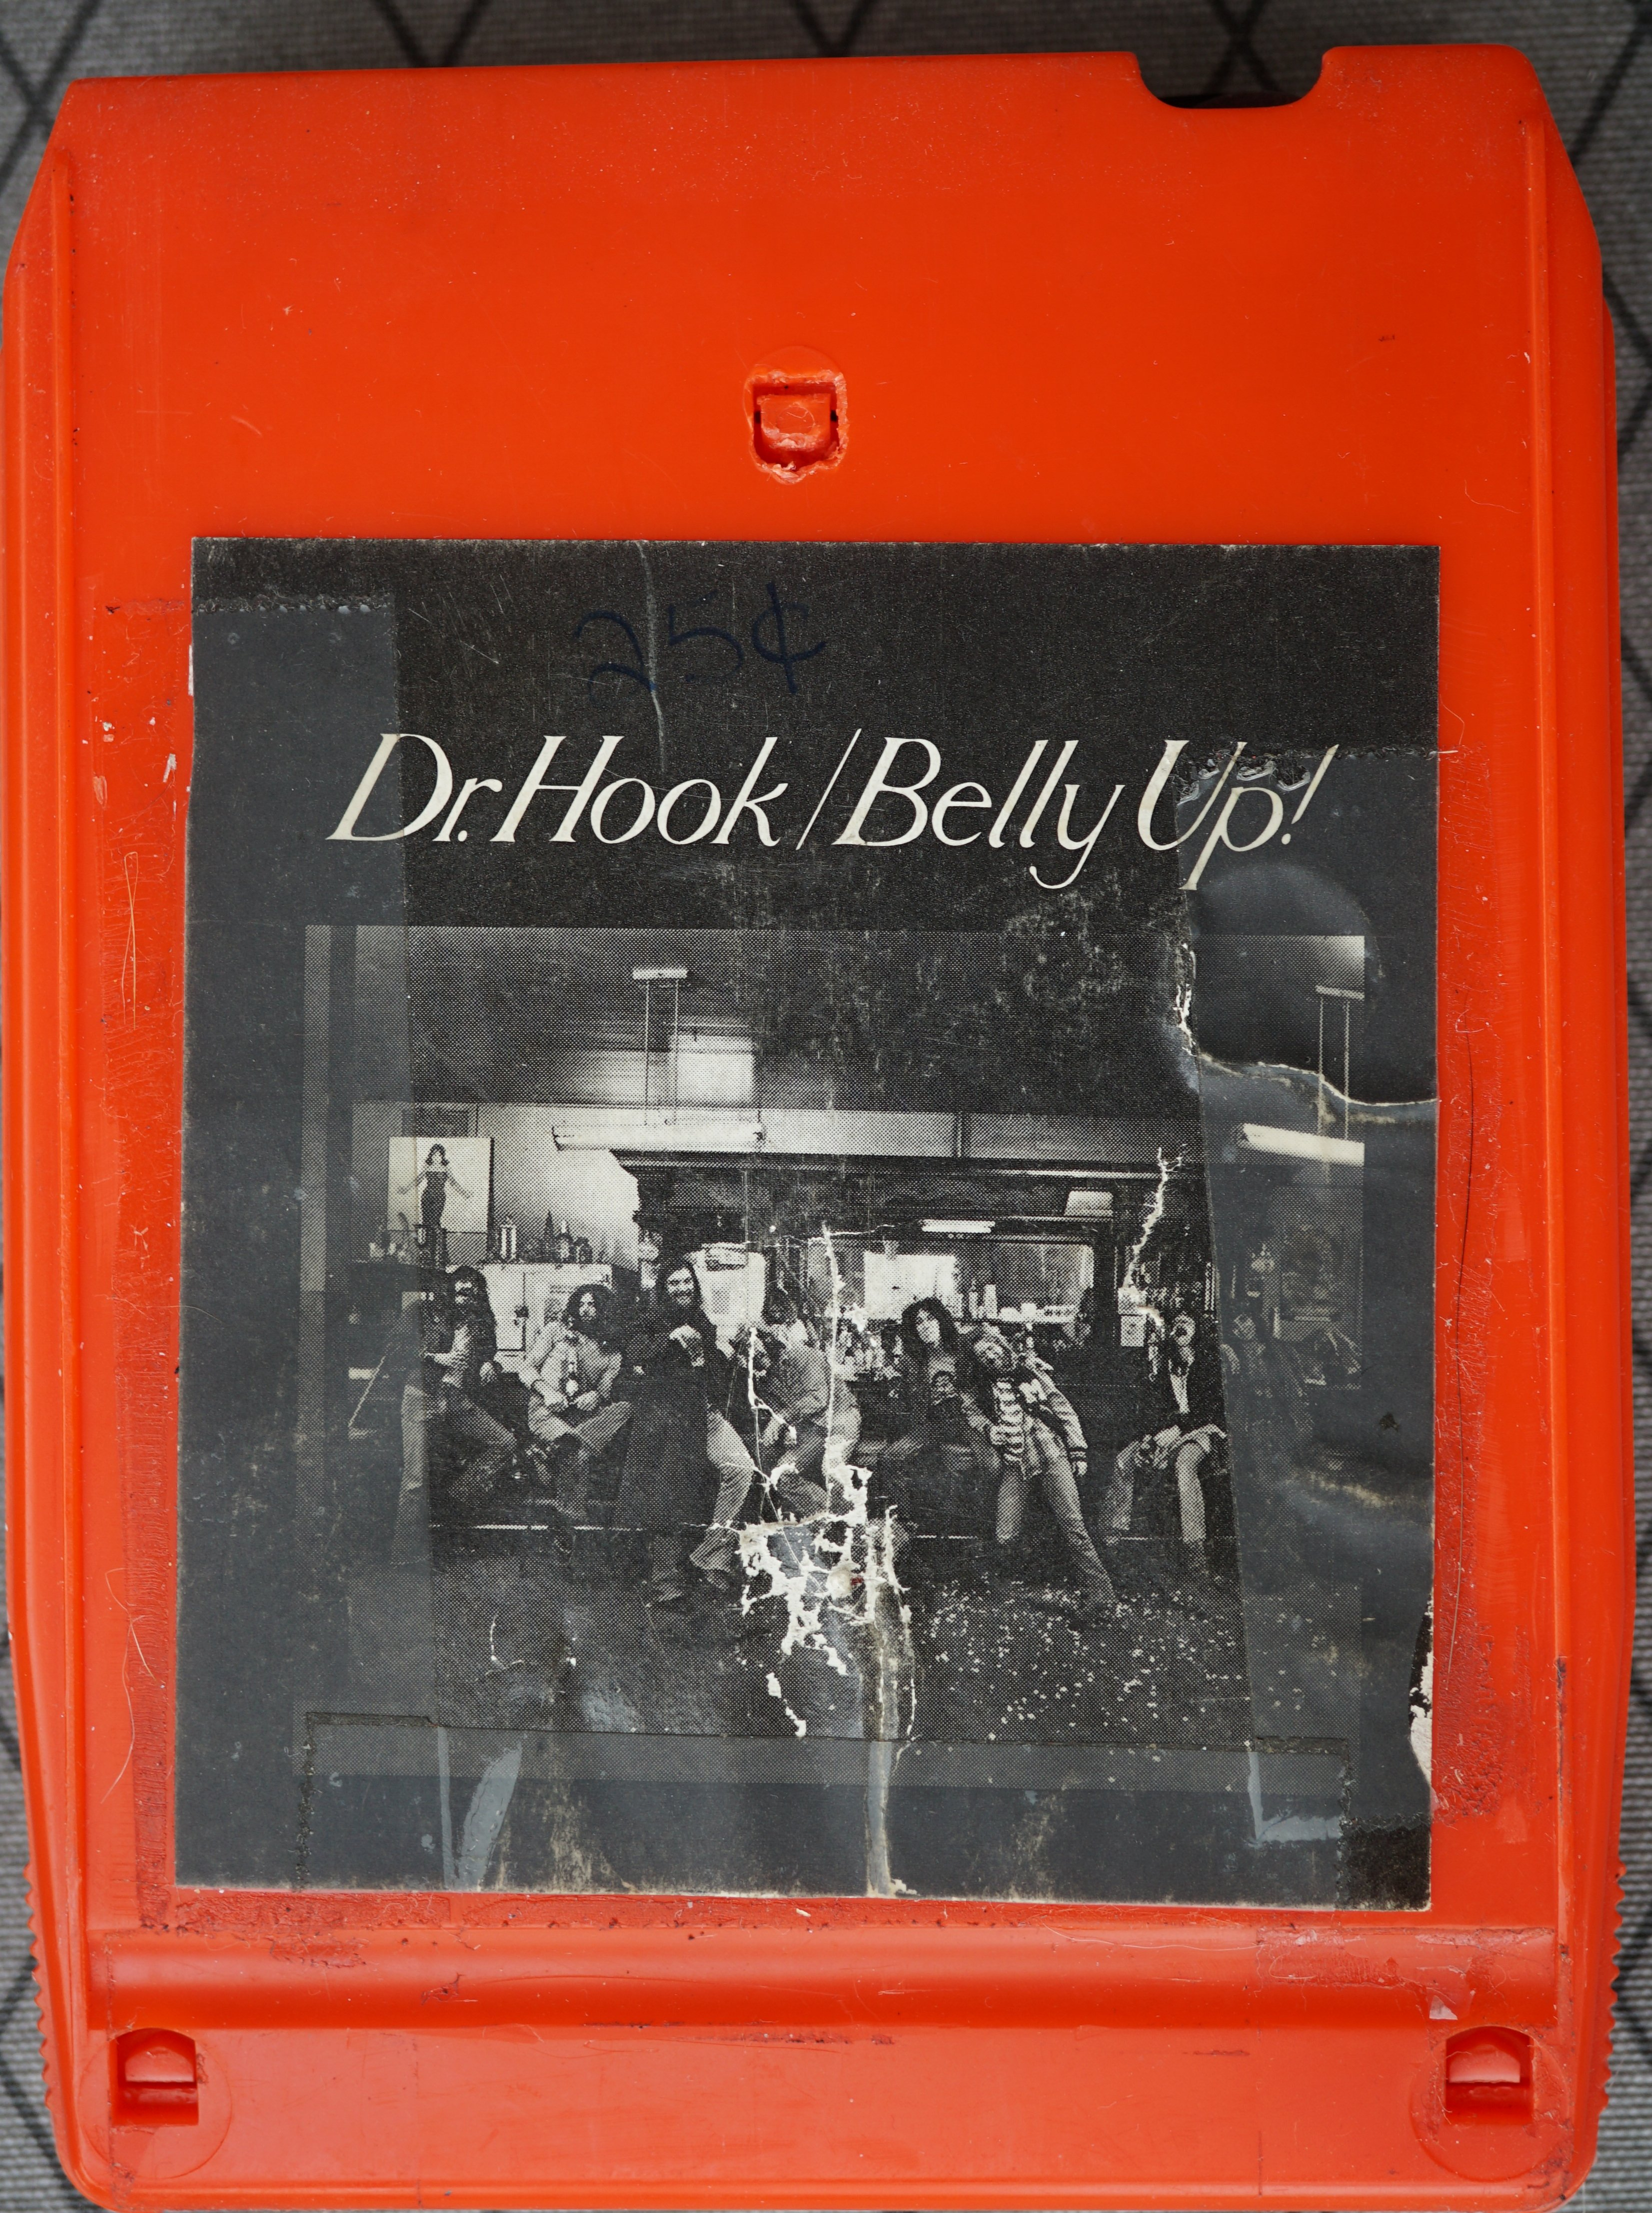 8 track - Belly Up - US 1973